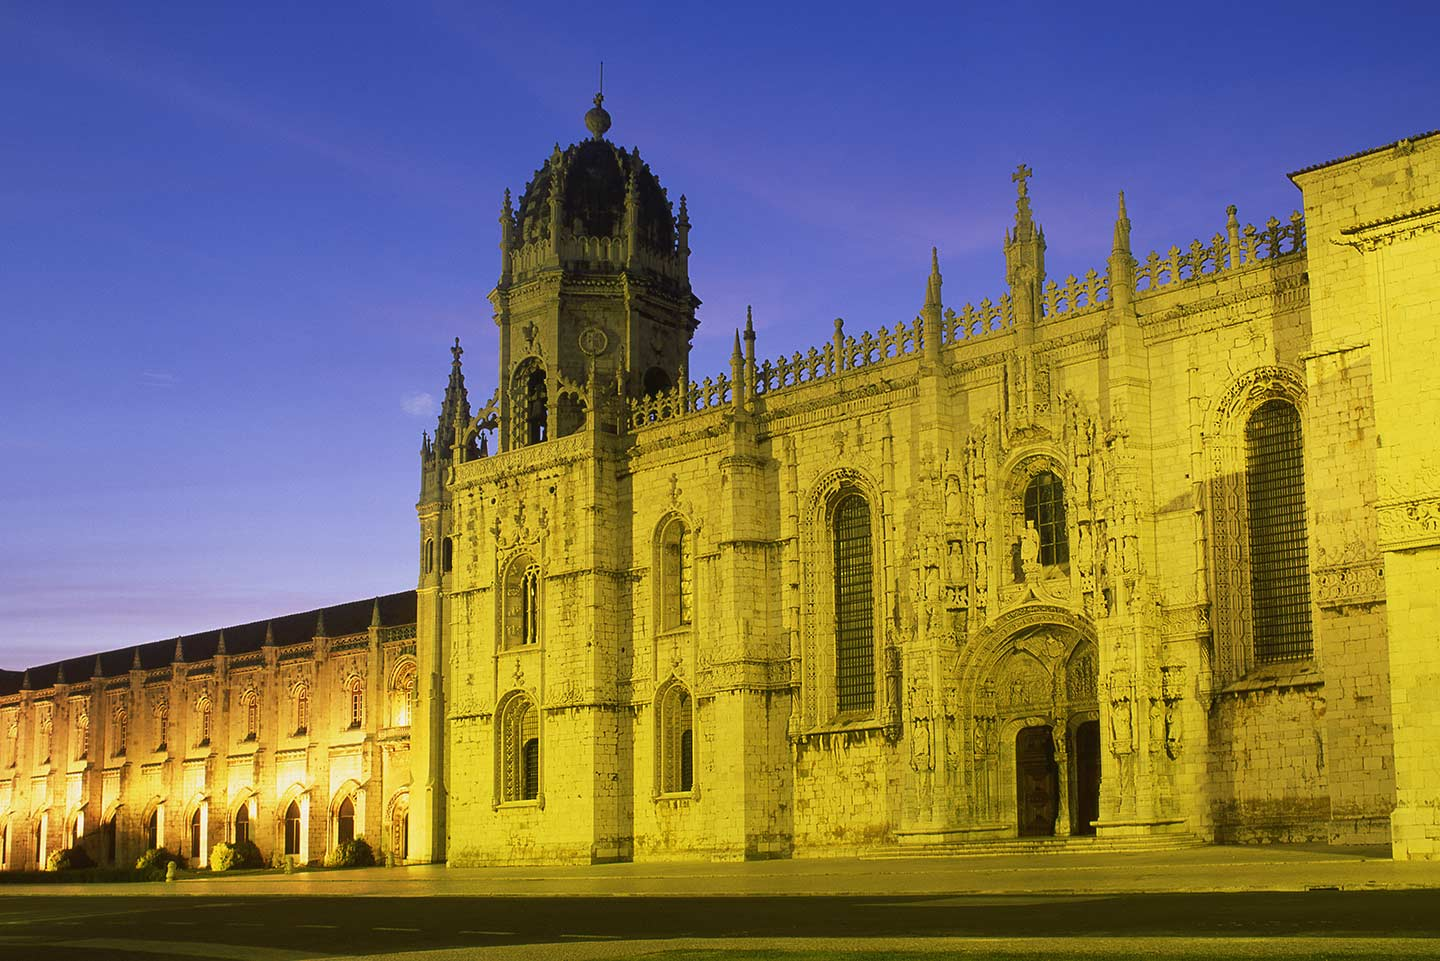 Image of the Jeronimos Monastery, or Mosteiro dos Jeronimos, in Belem